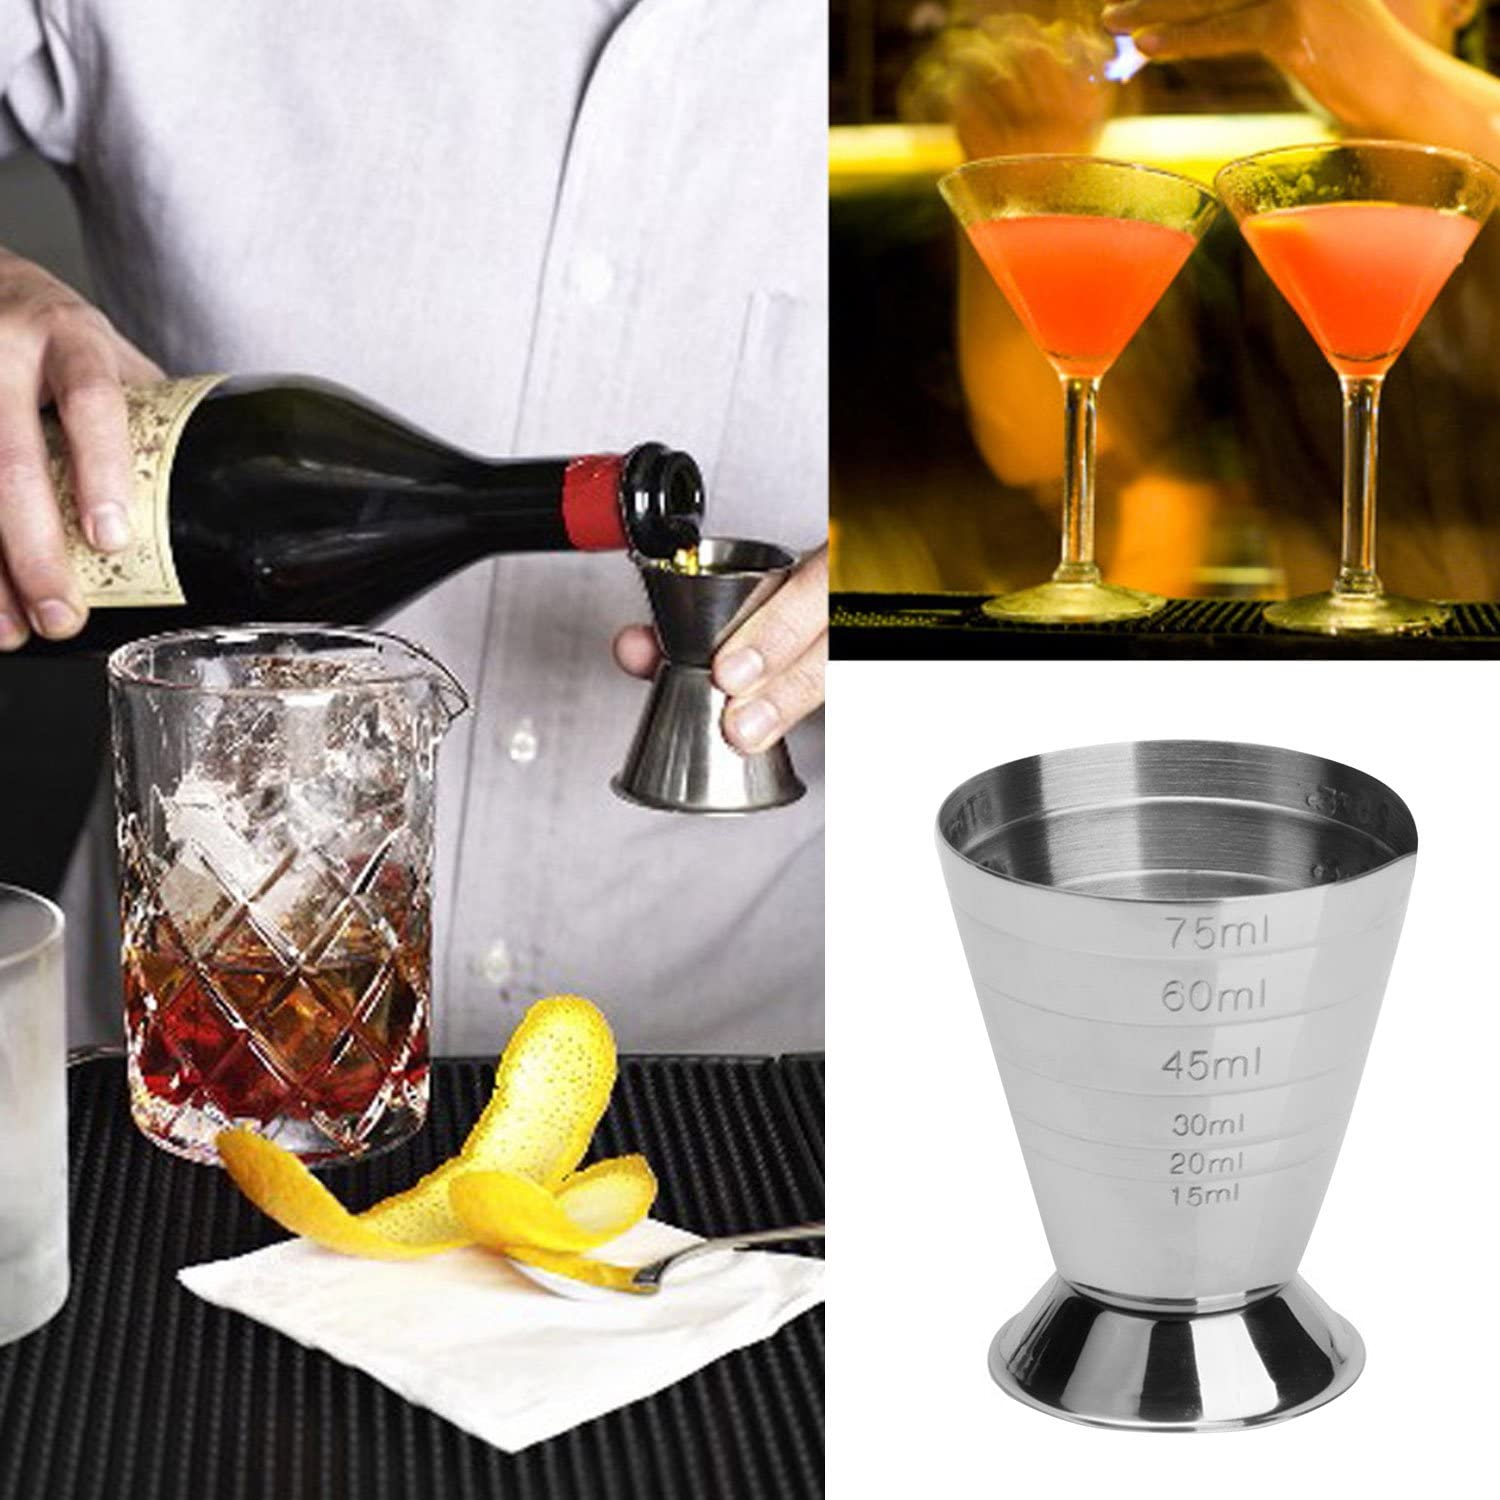 75ml Stainless Steel Cocktail Tools Bar Jigger Cup with ml oz Tbsp . Measurement Unit for Bars Home Making Mixed Drinks